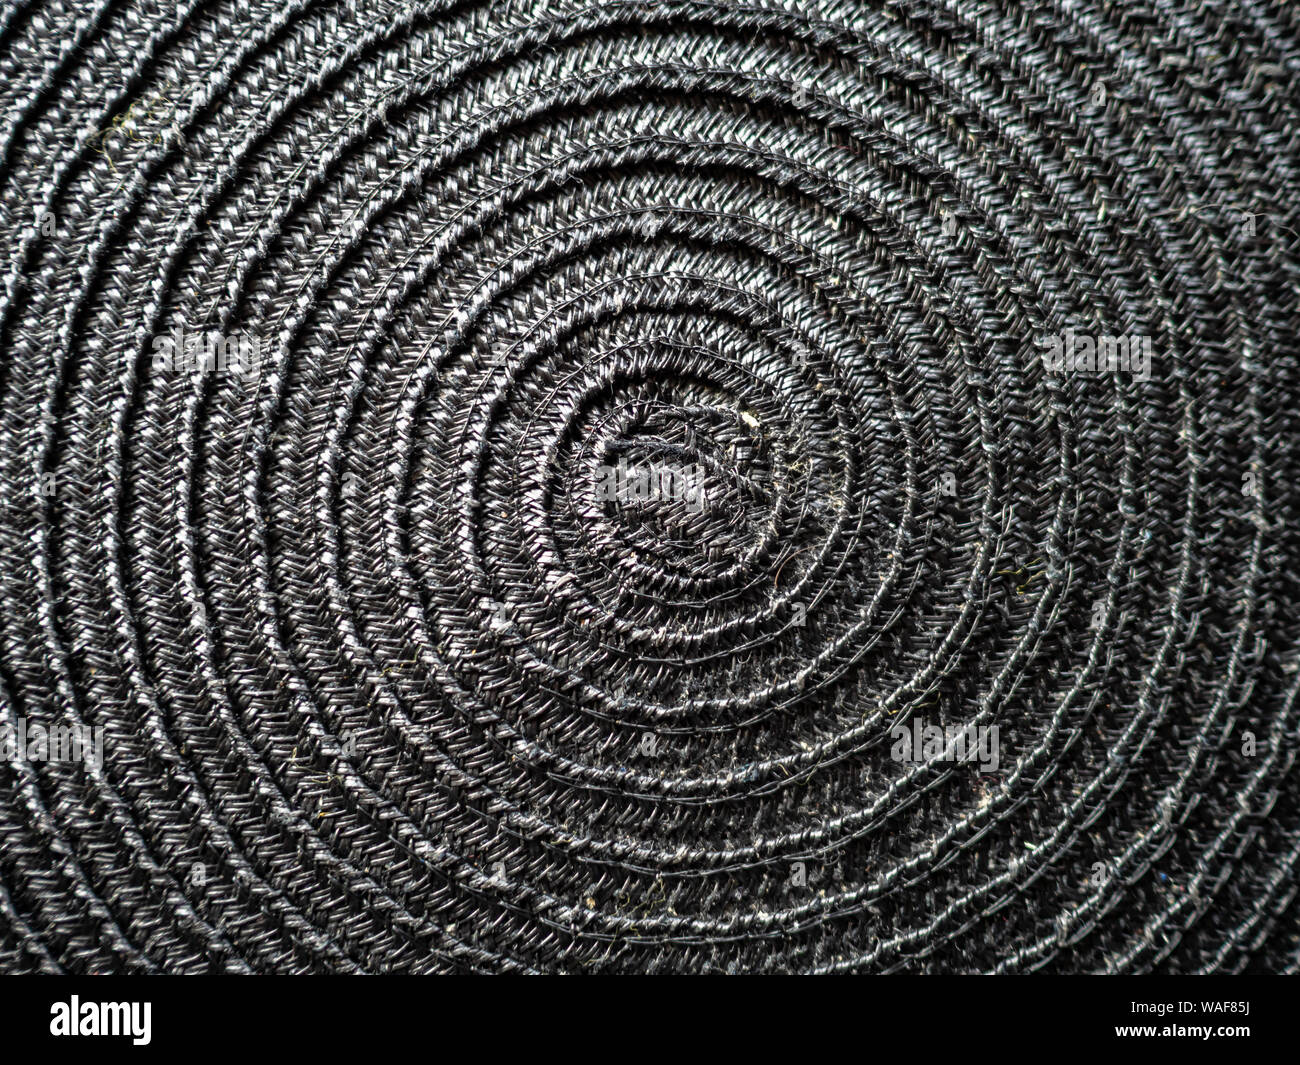 Detail of a black placemat, woven from natural materials featuring concentric spiralling circles Stock Photo